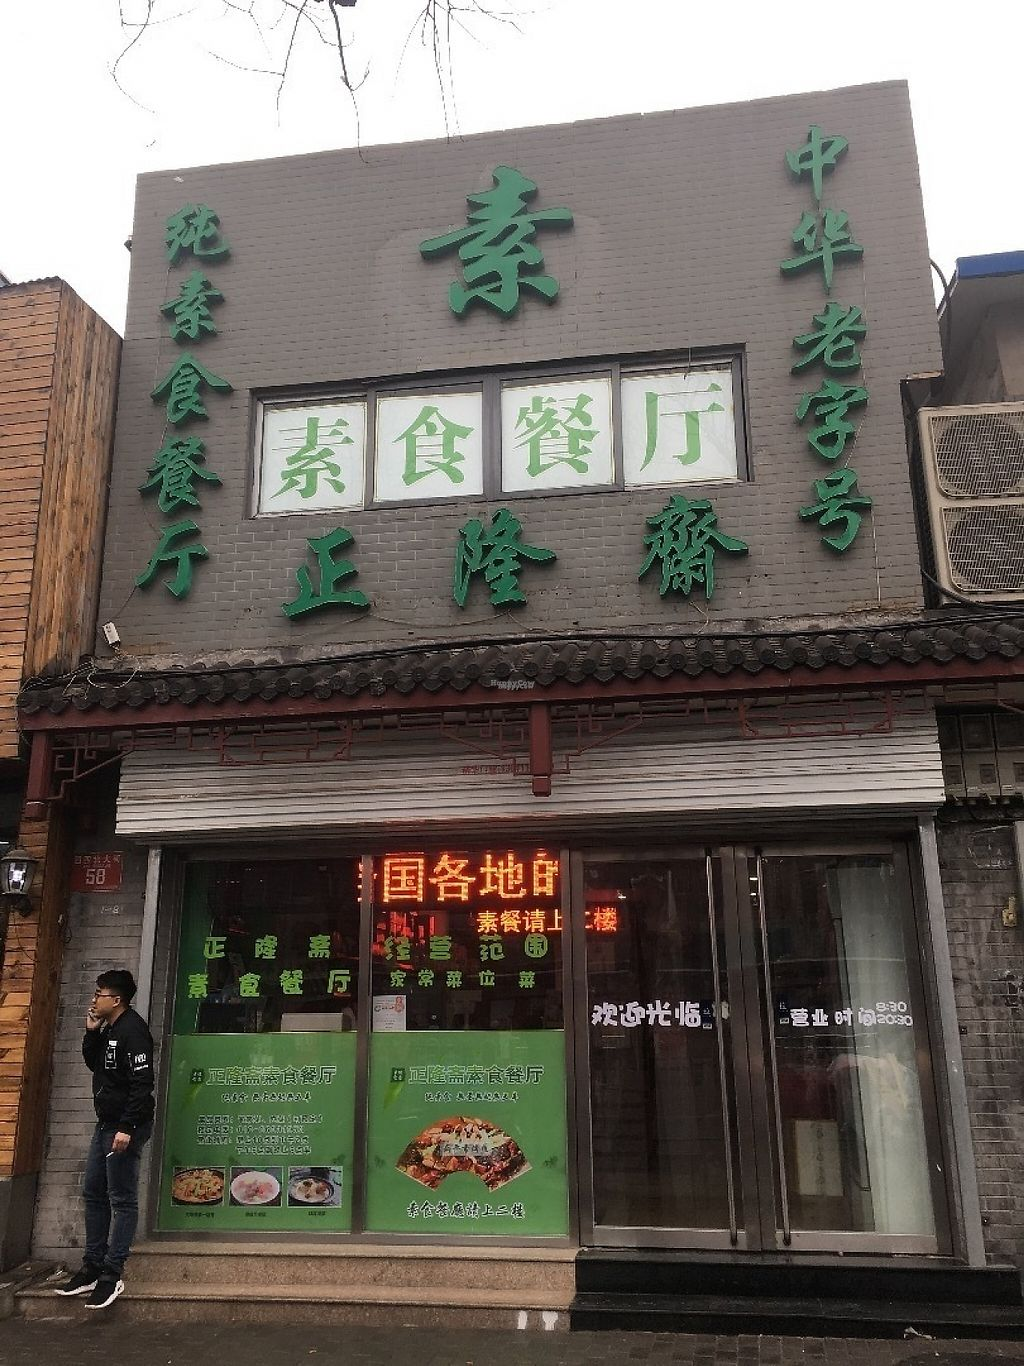 """Photo of Beijing Zheng Long Zhai Vegetarian  by <a href=""""/members/profile/jojoinbrighton"""">jojoinbrighton</a> <br/>The store <br/> April 24, 2017  - <a href='/contact/abuse/image/28635/251749'>Report</a>"""